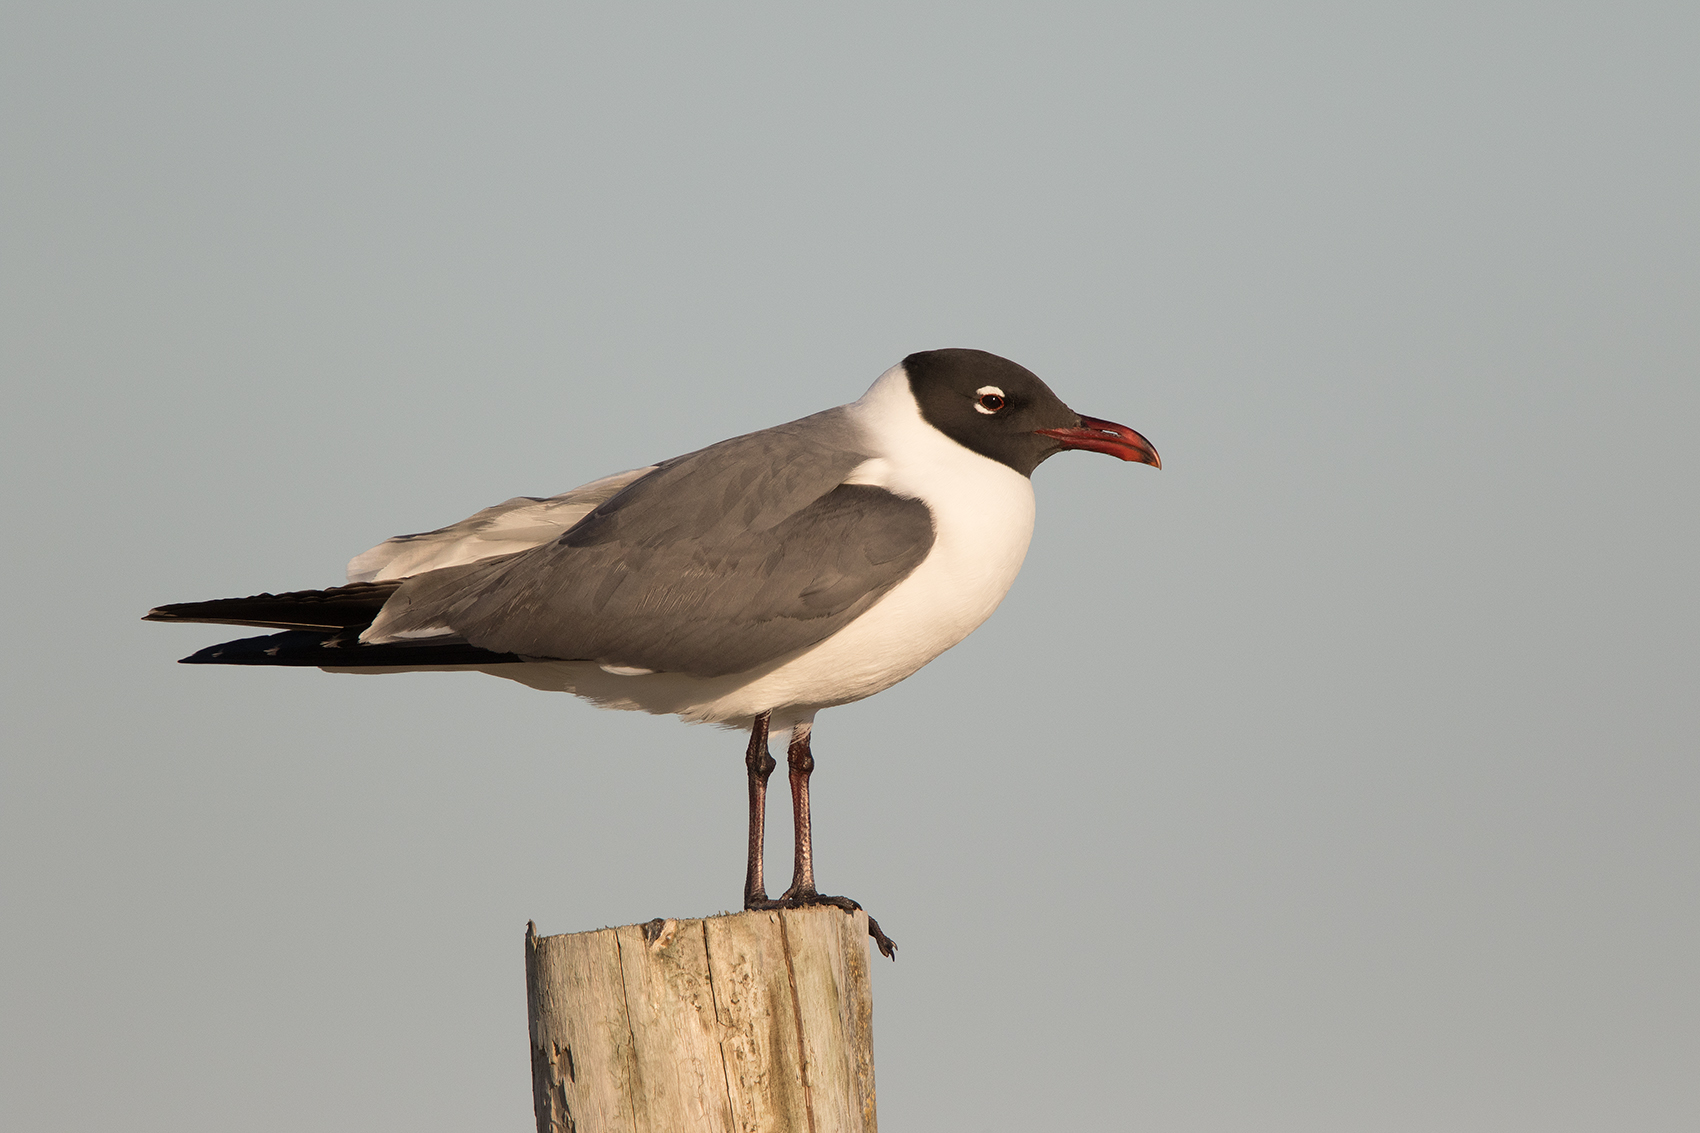 LAUGHING GULL - GALVESTON COUNTY TX APRIL, 2016